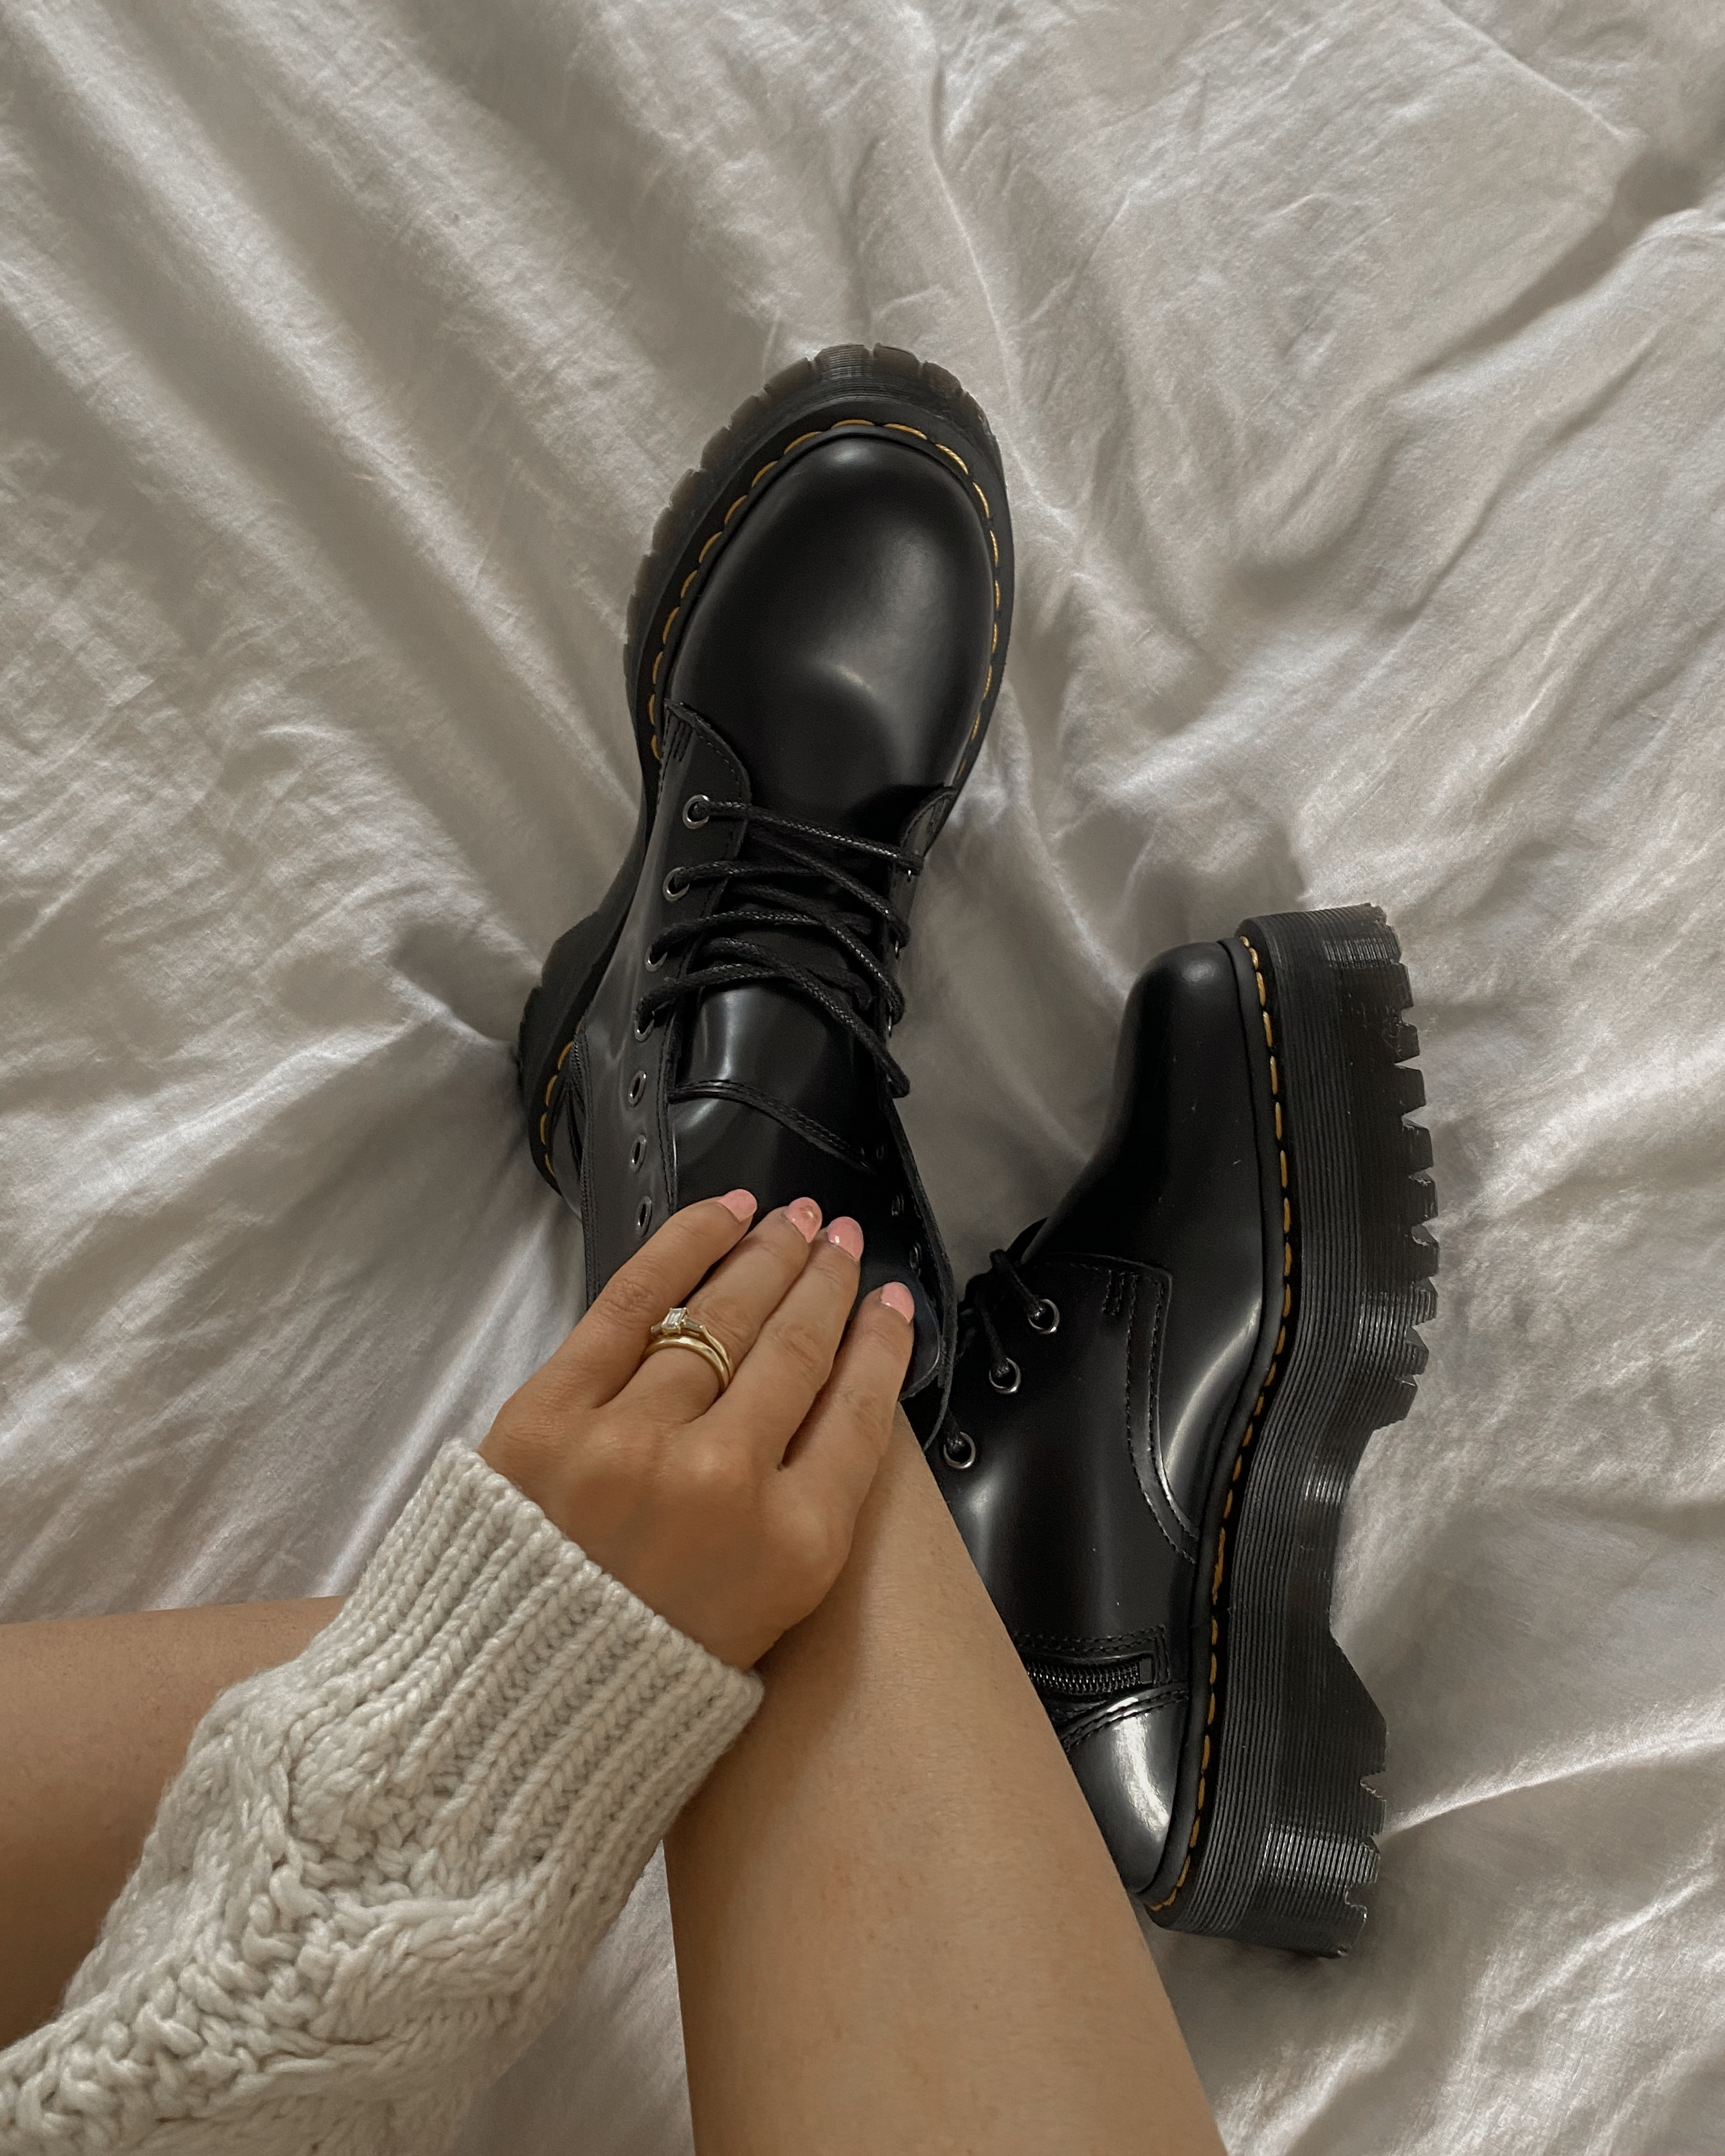 Styling Dr Martens Jaden Boots - Black Chunky Boots